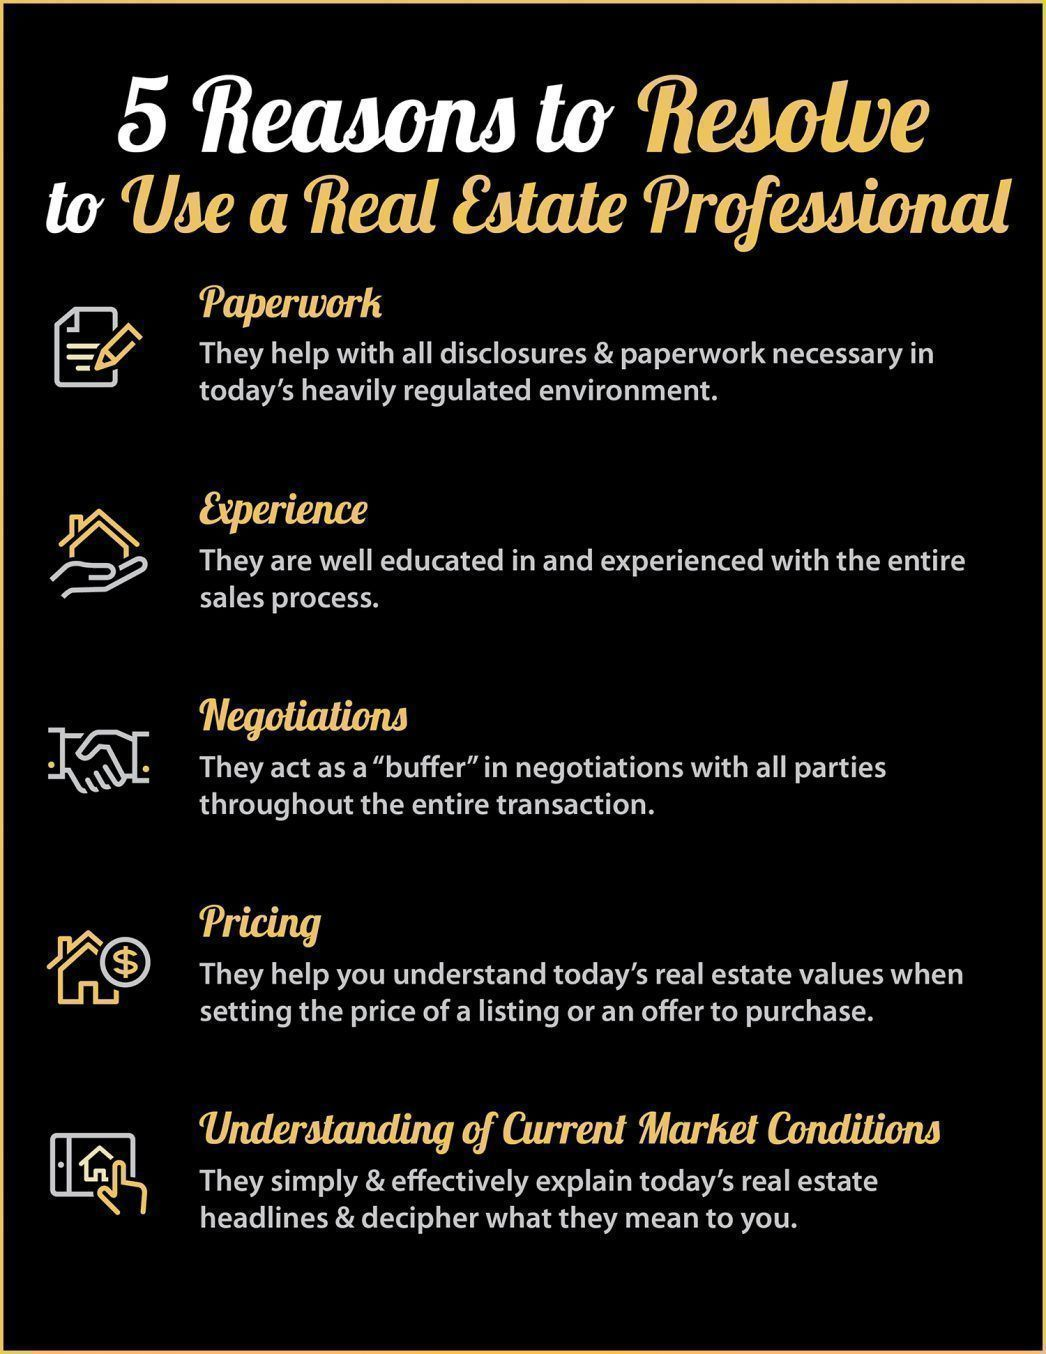 Why You Should Hire A Real Estate Professional Real Estate Agent Can Provide Free Resources An Real Estate Quotes Real Estate Tips Real Estate Marketing Tools